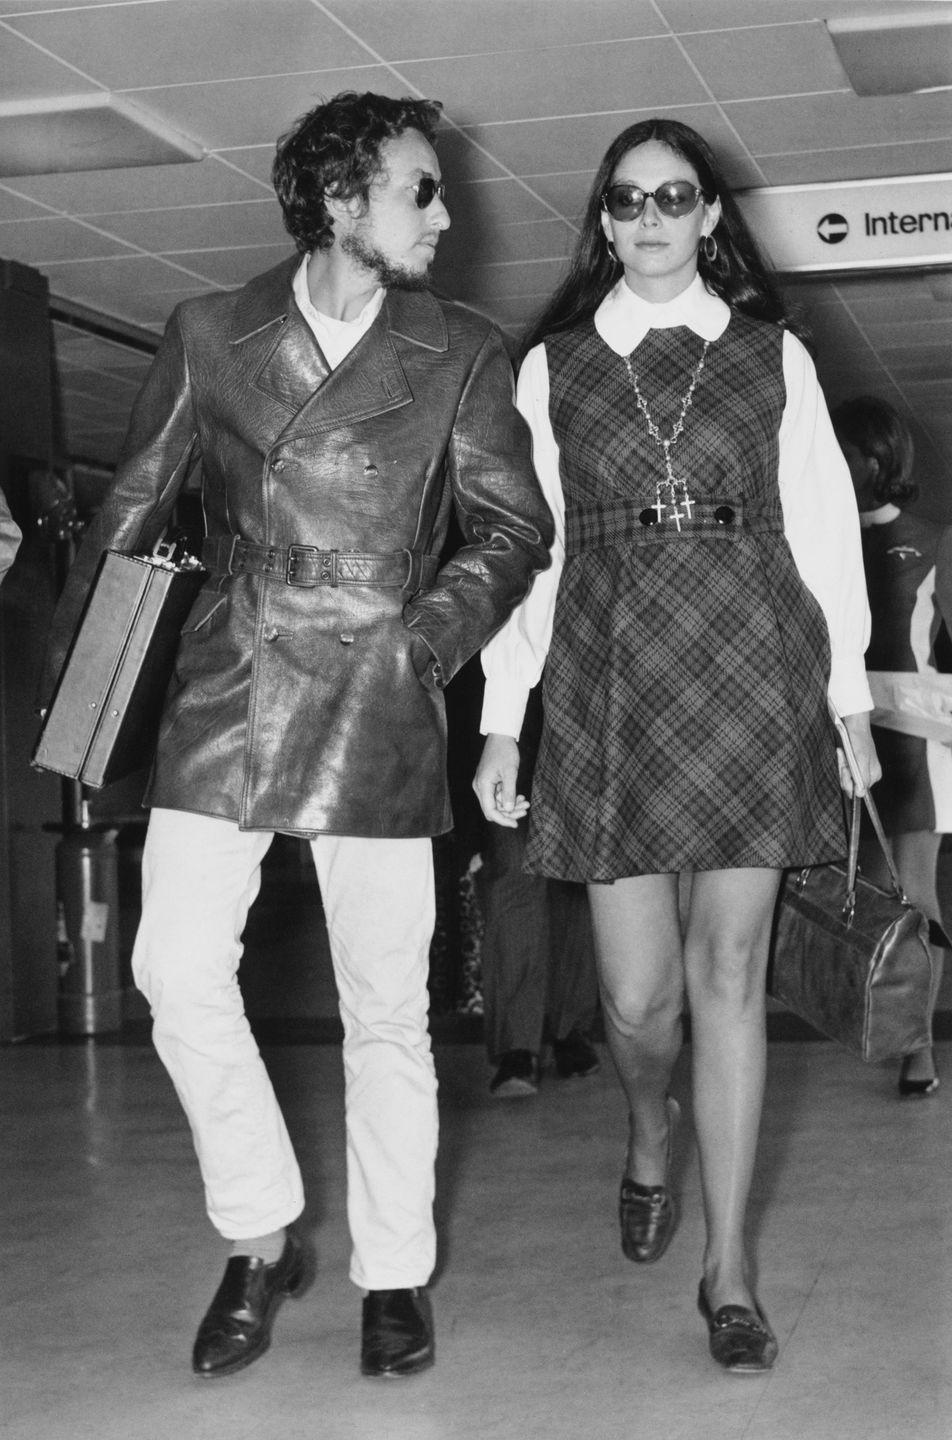 <p>Bob Dylan with his then-wife, Sara Lownds, at Heathrow Airport, London, 1969.</p>